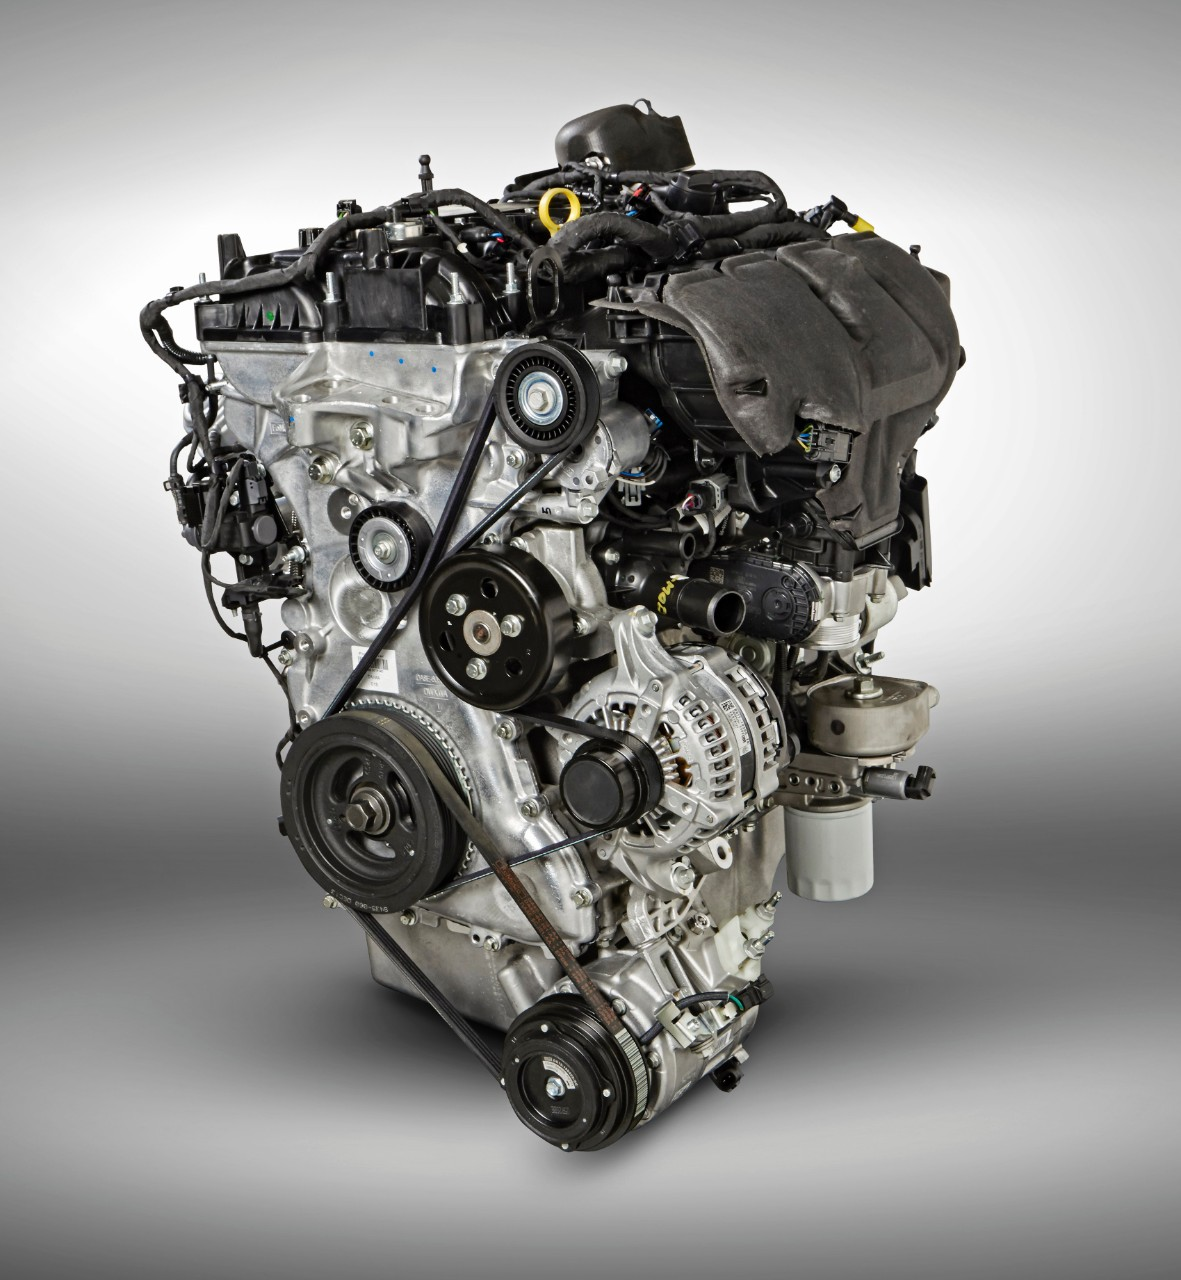 Ford cleveland engine plant begins production of 2 0 liter and 2 3 liter eb engines